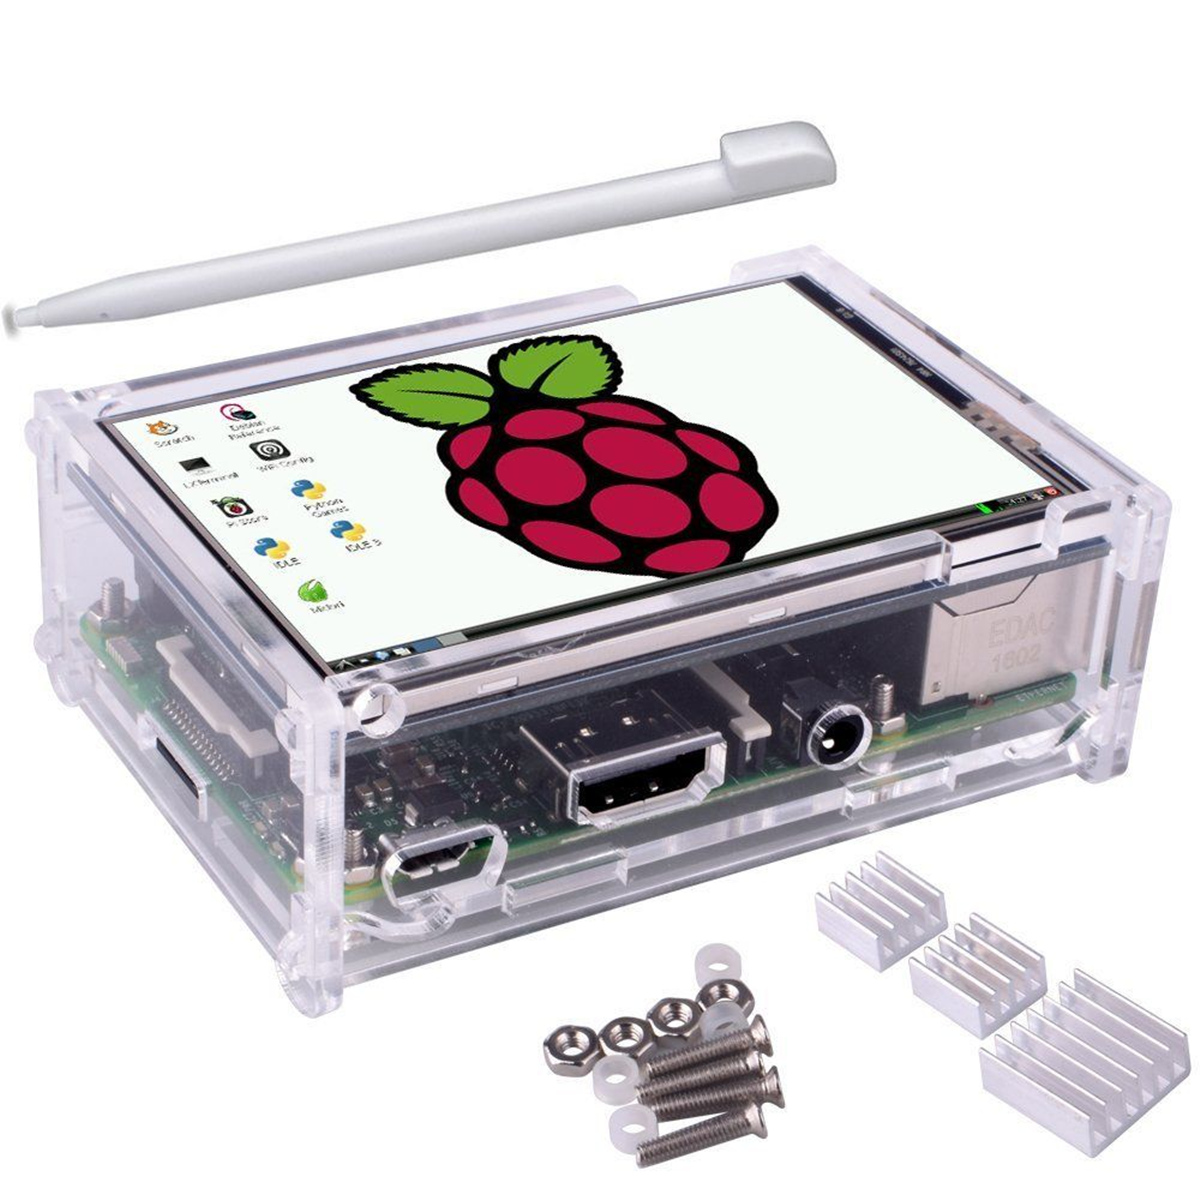 3.5 inch TFT LCD Touch Screen Heatsink Touch Pen Kit with Protective Case For Raspberry Pi 3/2/Model